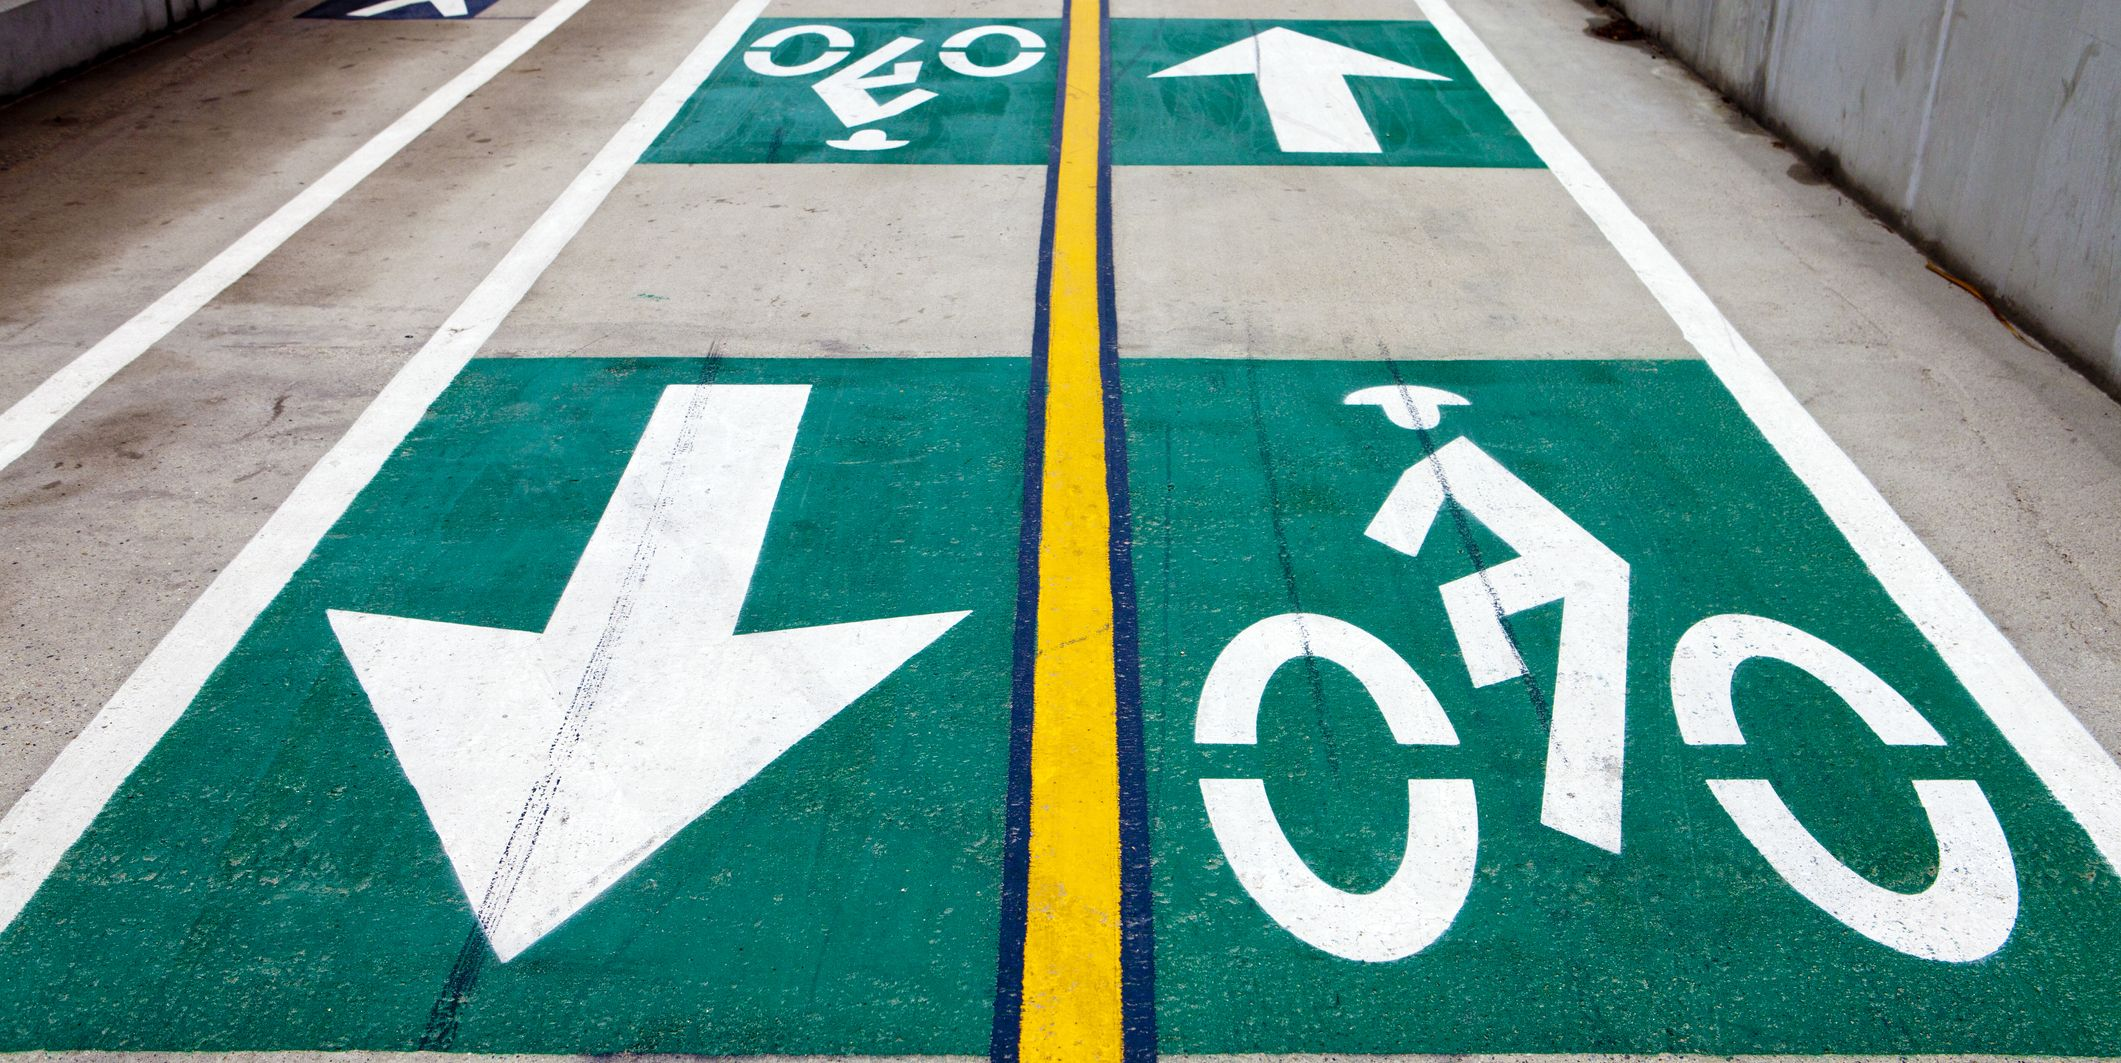 Walking and bicycle lanes on a roadway